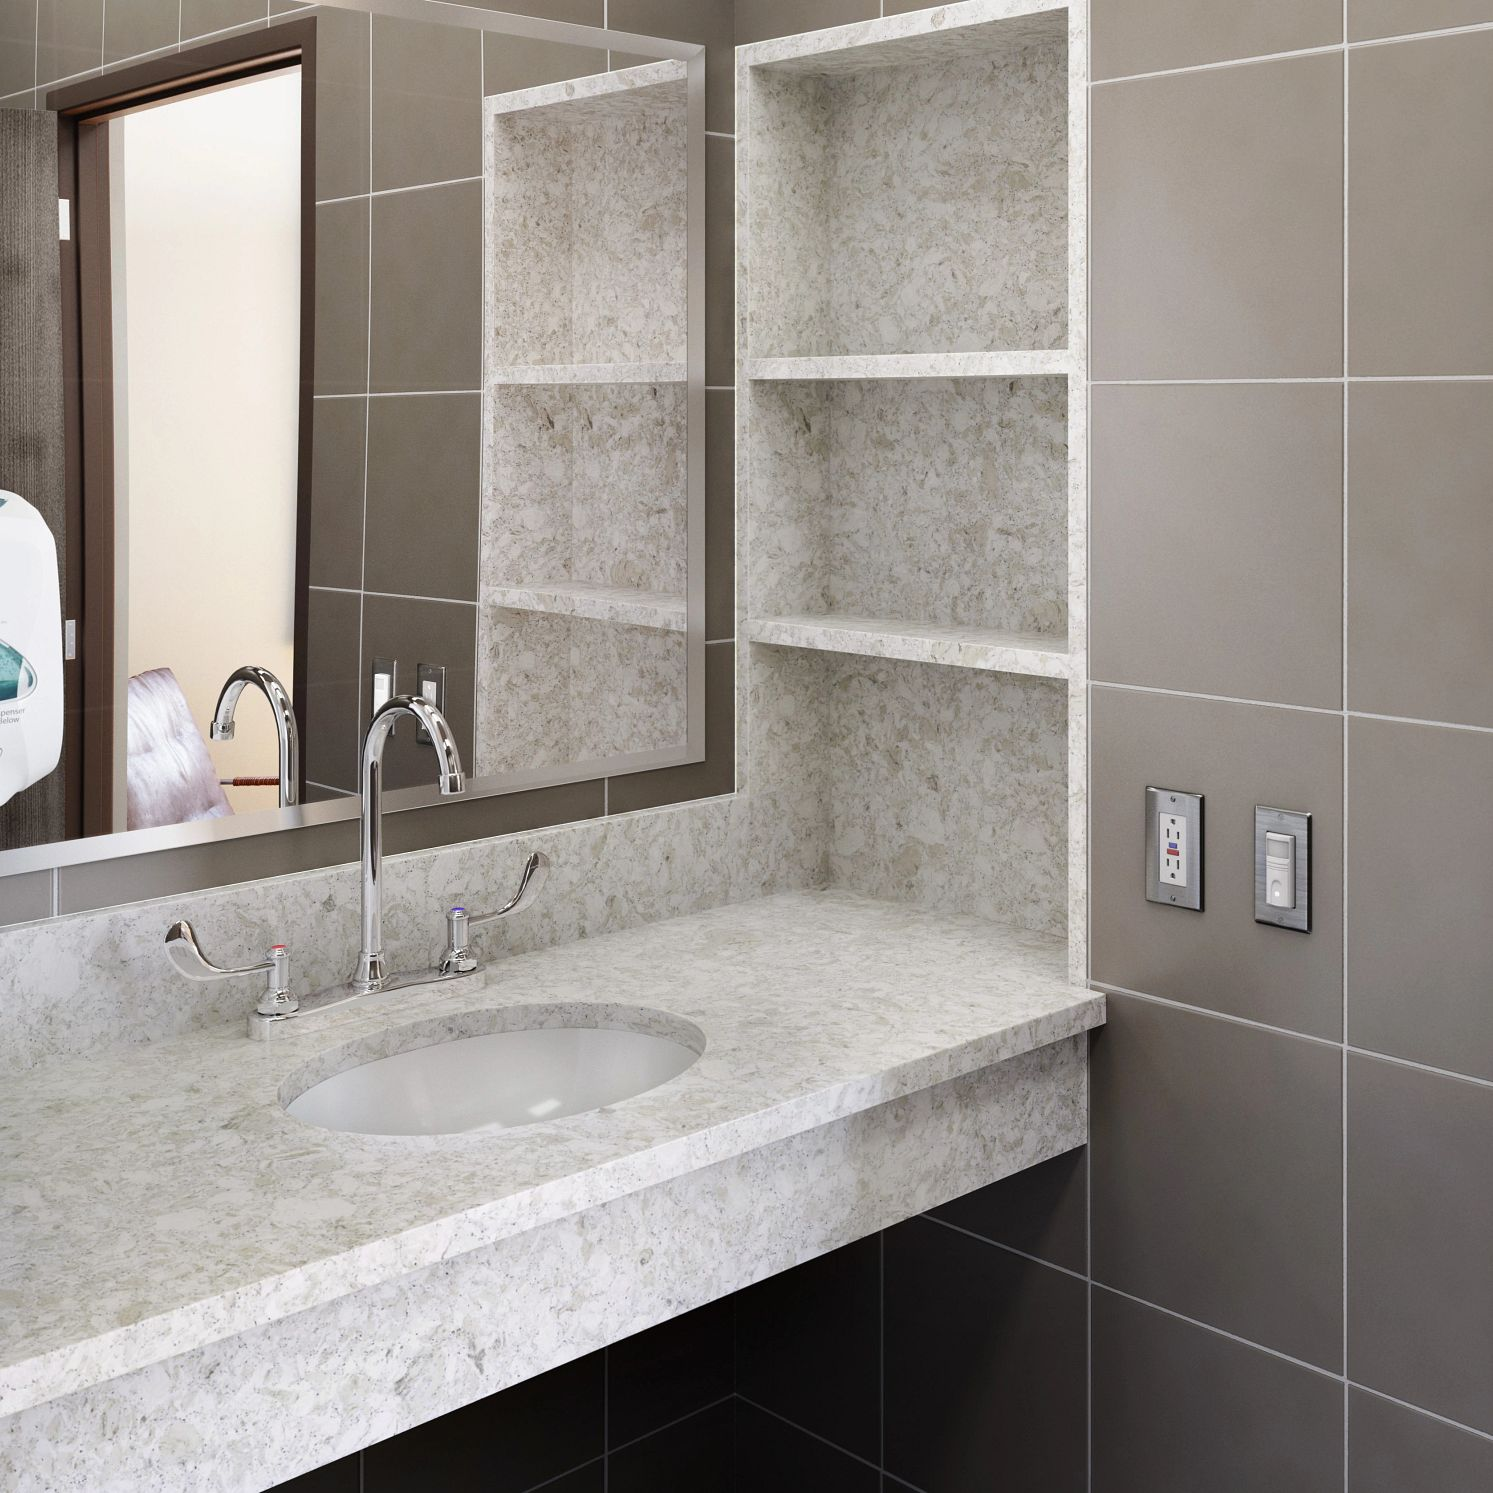 A bathroom with a sink and a mirror  Description automatically generated with low confidence